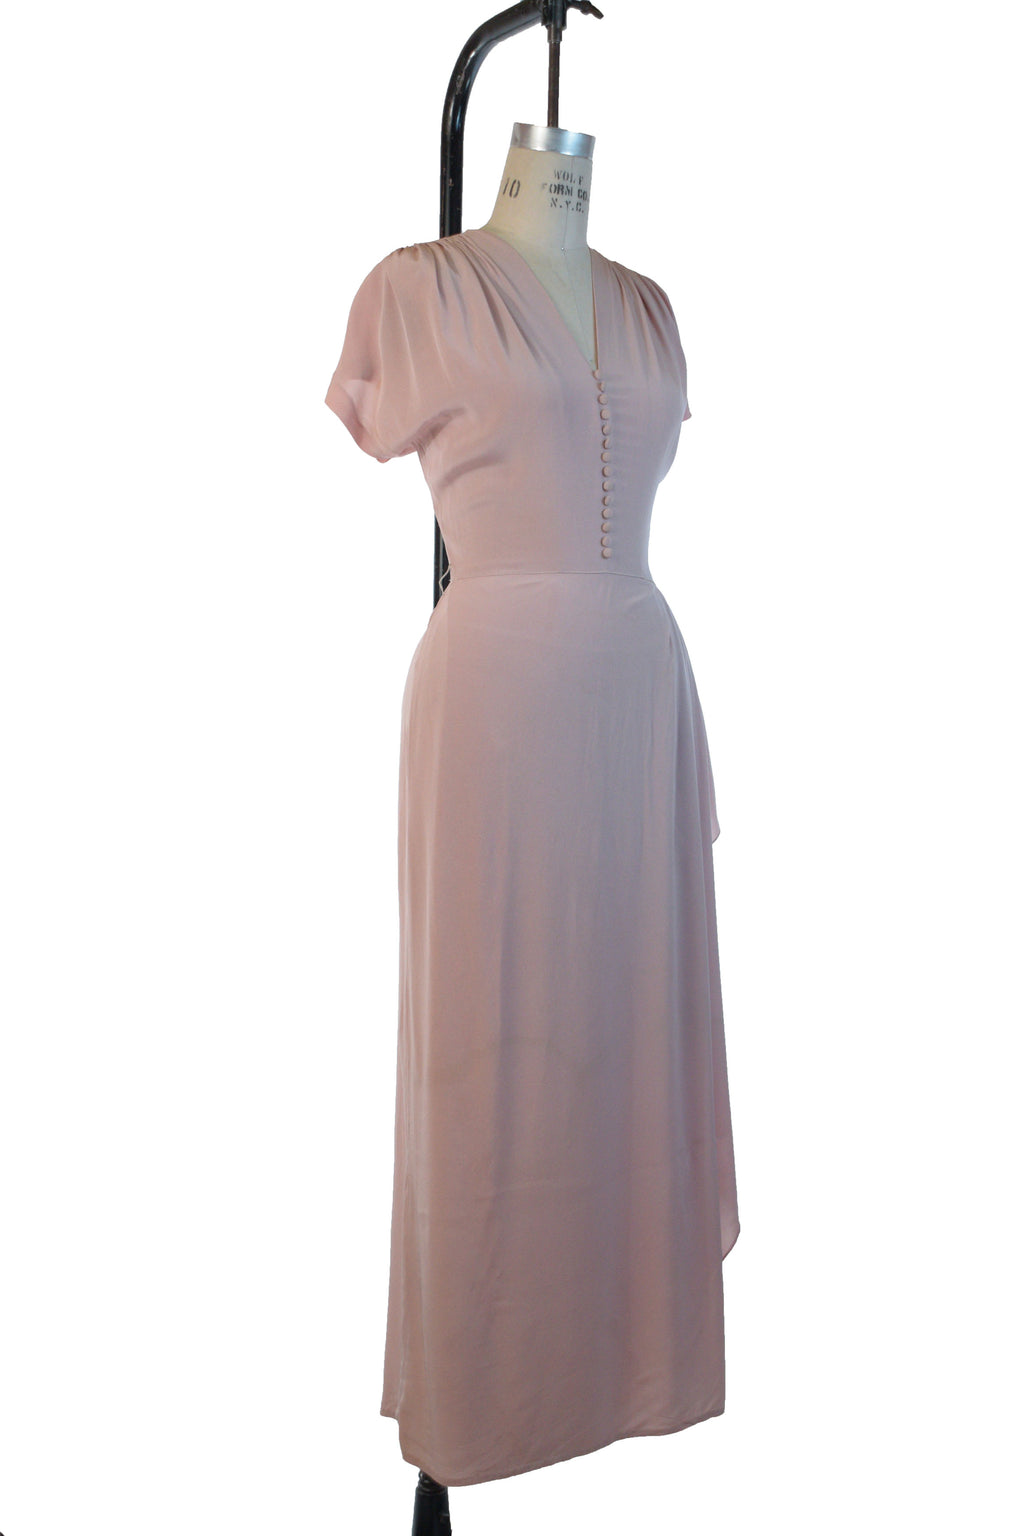 Elegant 1940s DuBarry Evening Gown in Rosy Pink with Hip Drape